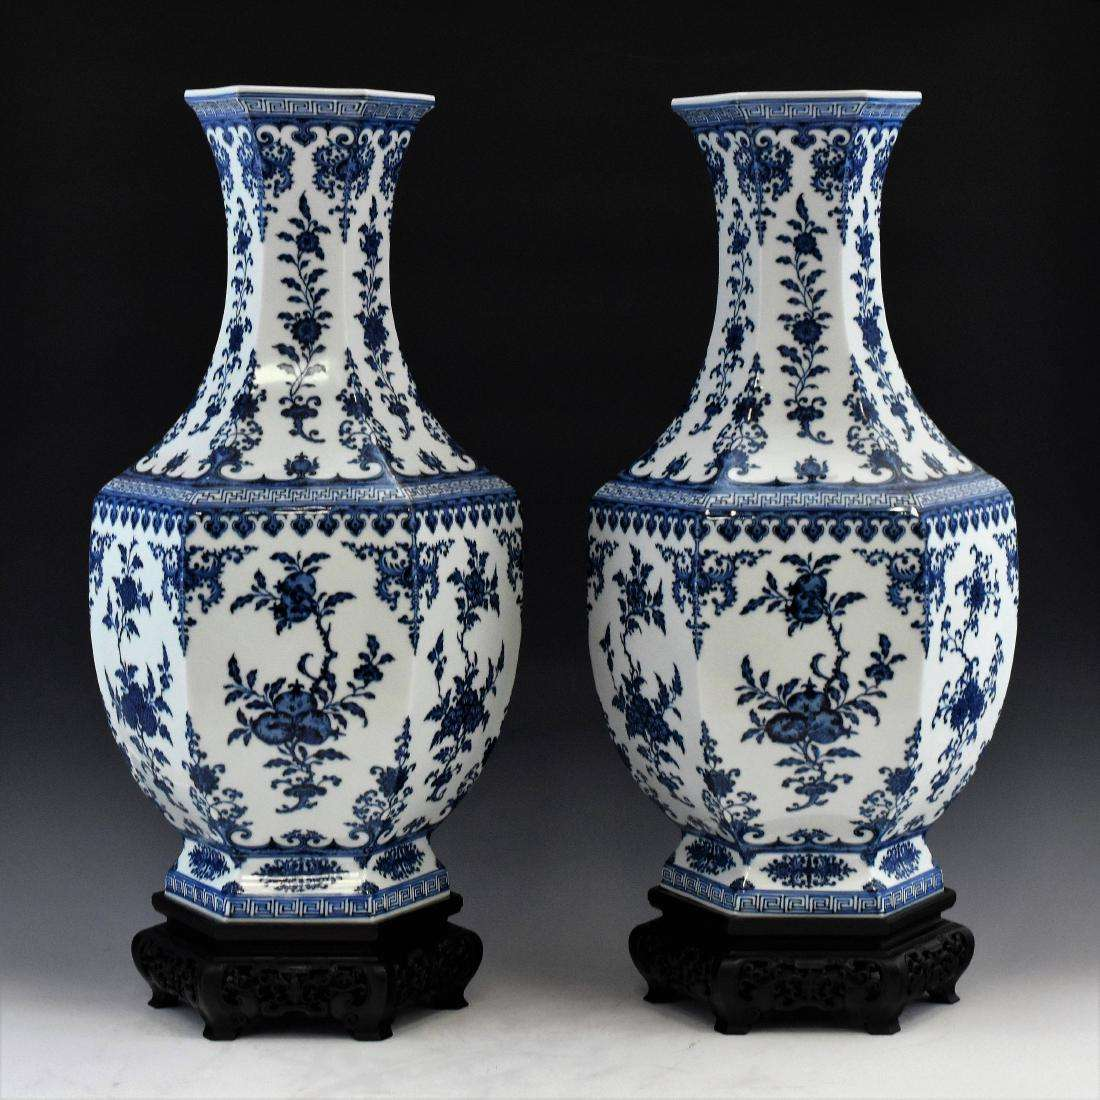 About Chinese Antique Auctions On eBay From Fakes to Rarities